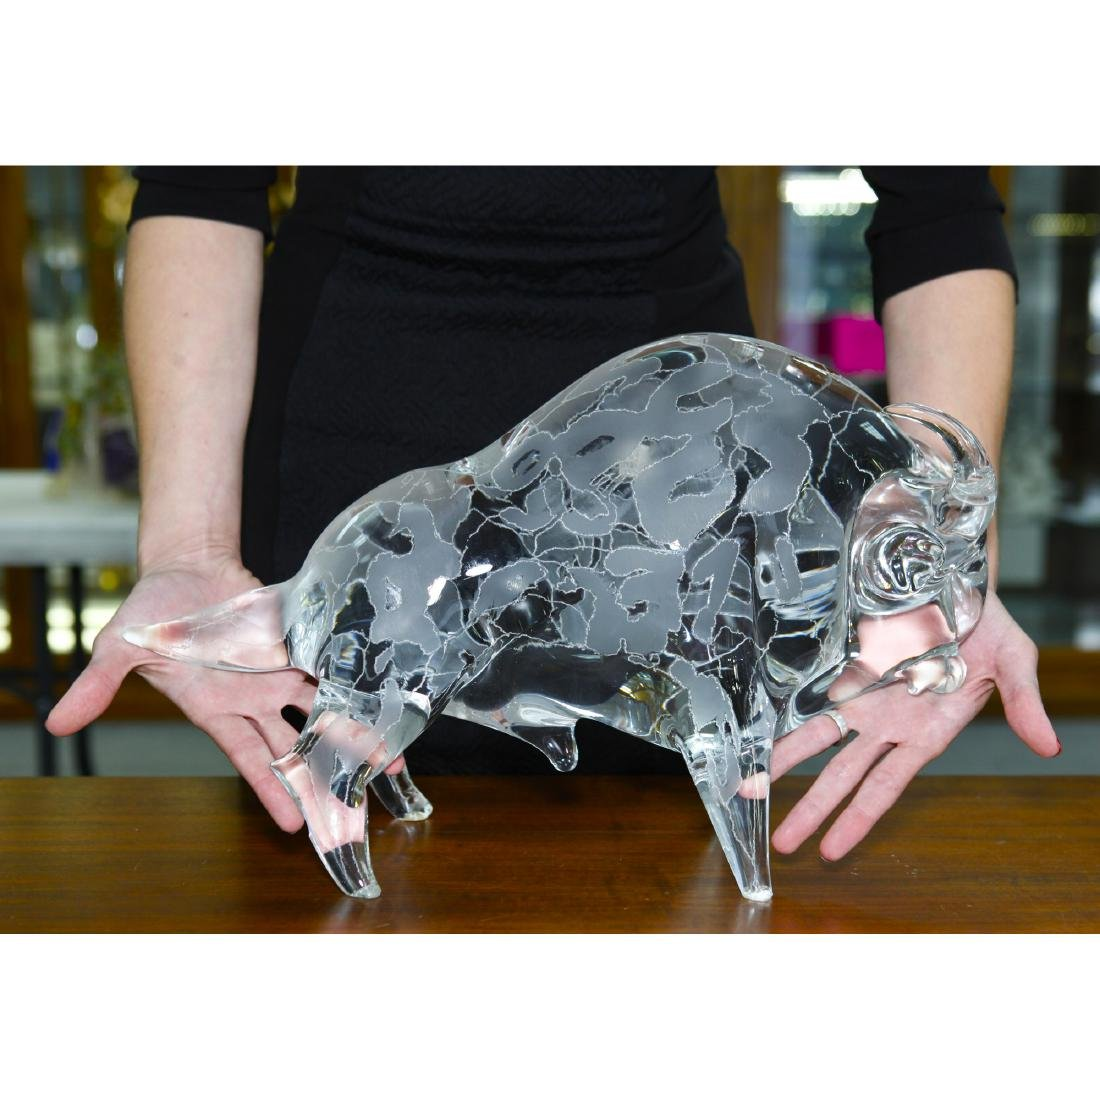 LICIO ZANETTI ETCHED MURANO GLASS LARGE BULL